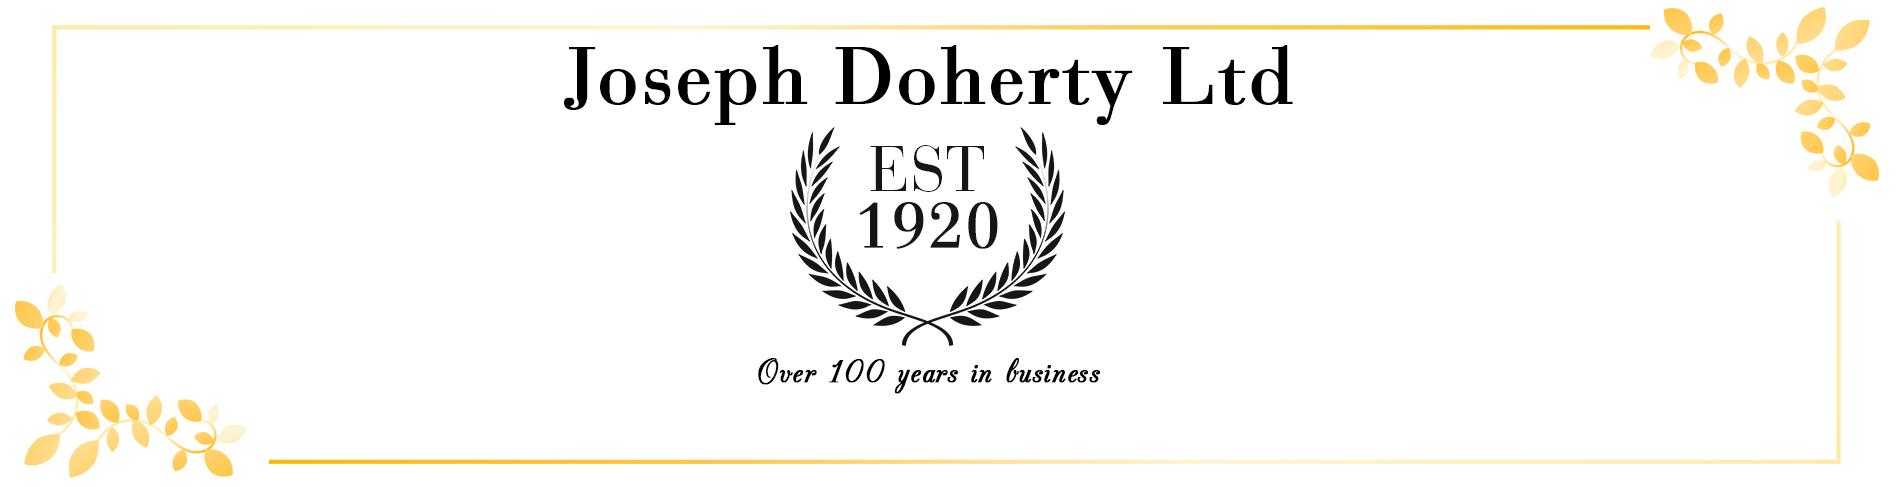 100 Years in Business